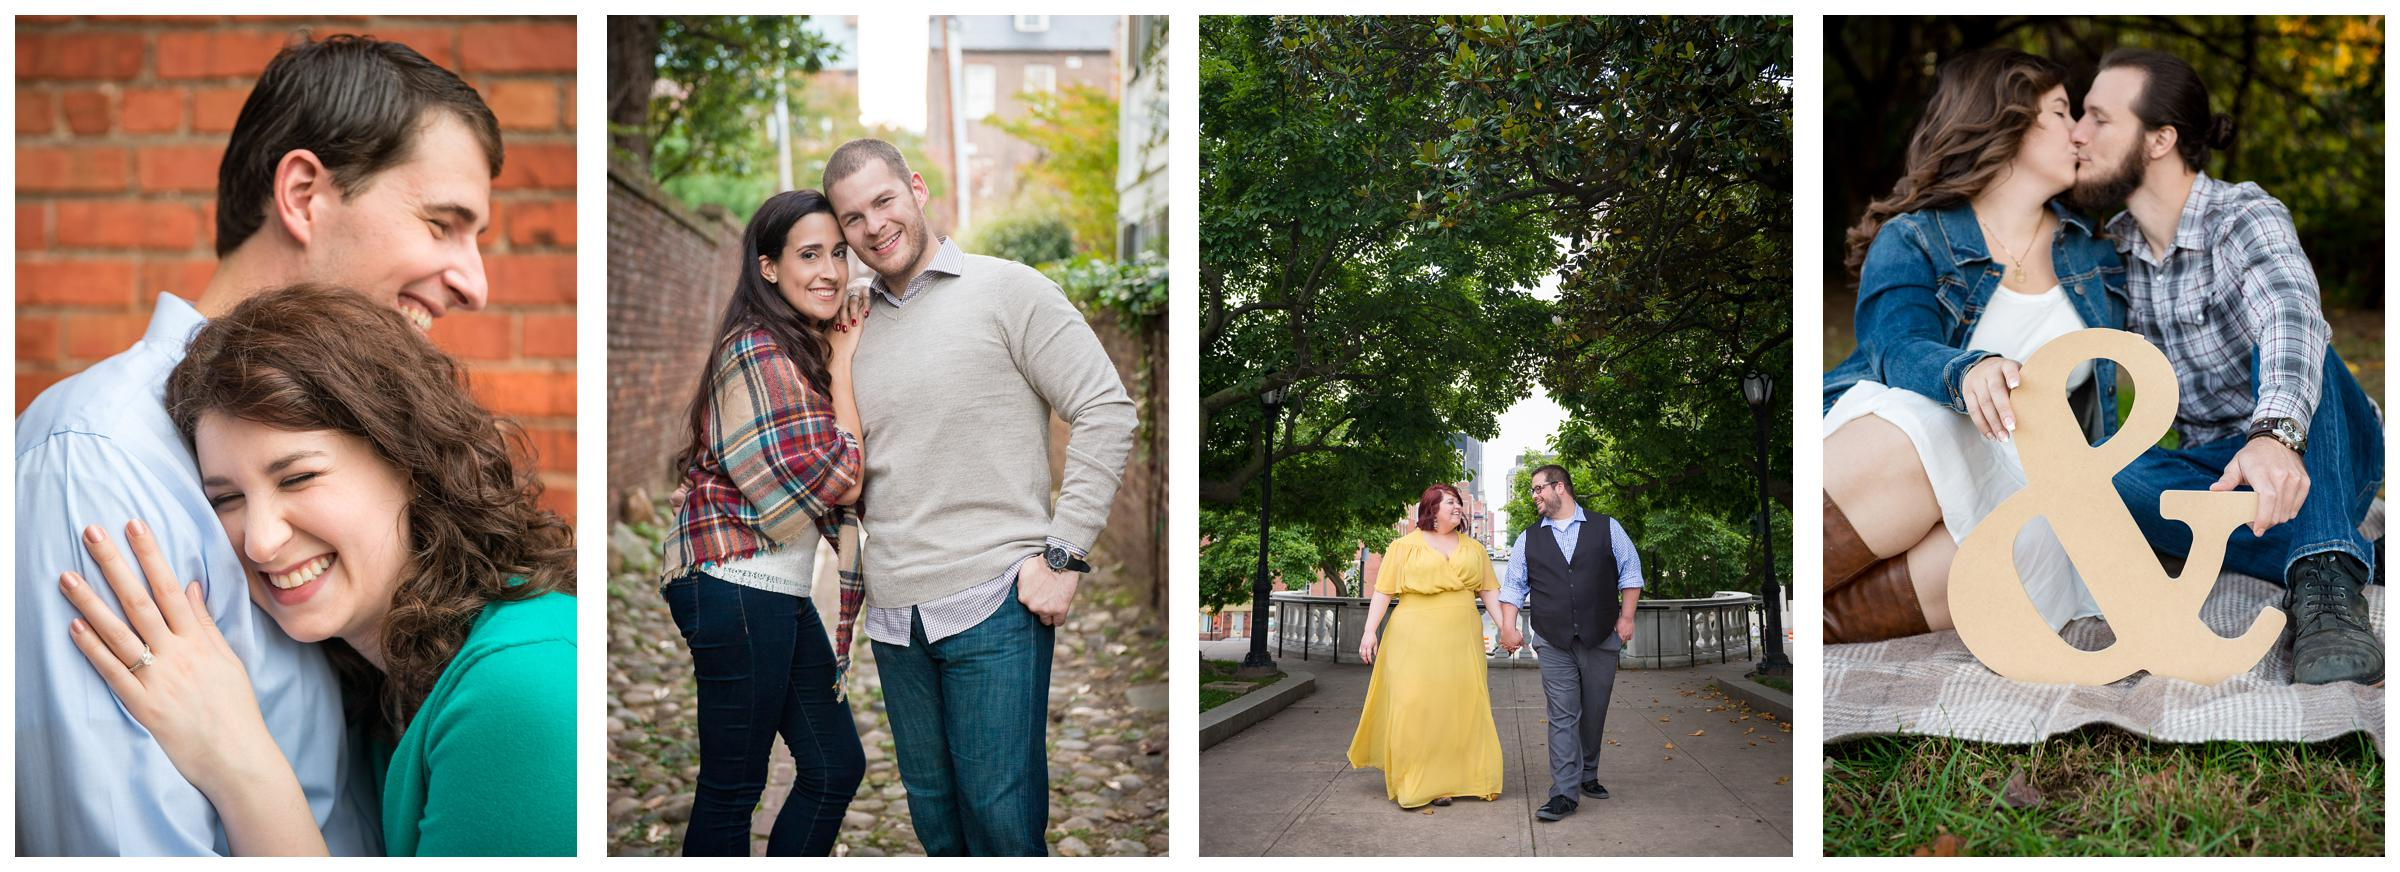 engagement photos in Virginia and Maryland